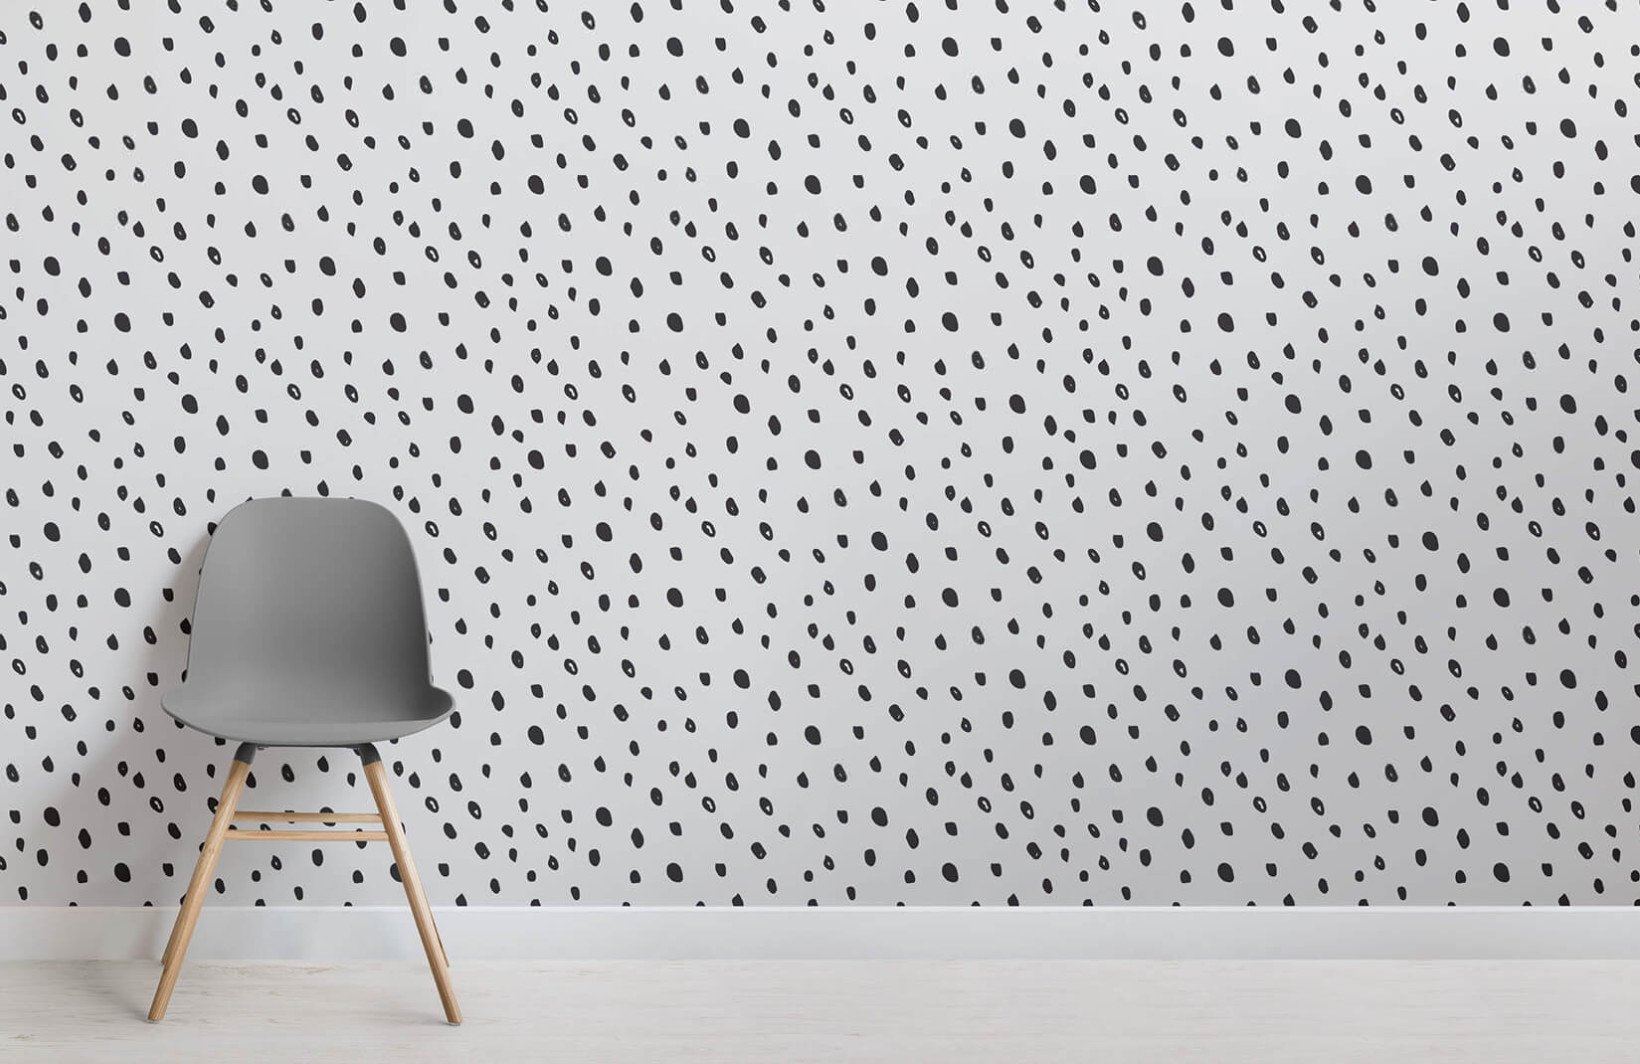 Children's Wallpaper|Speckle